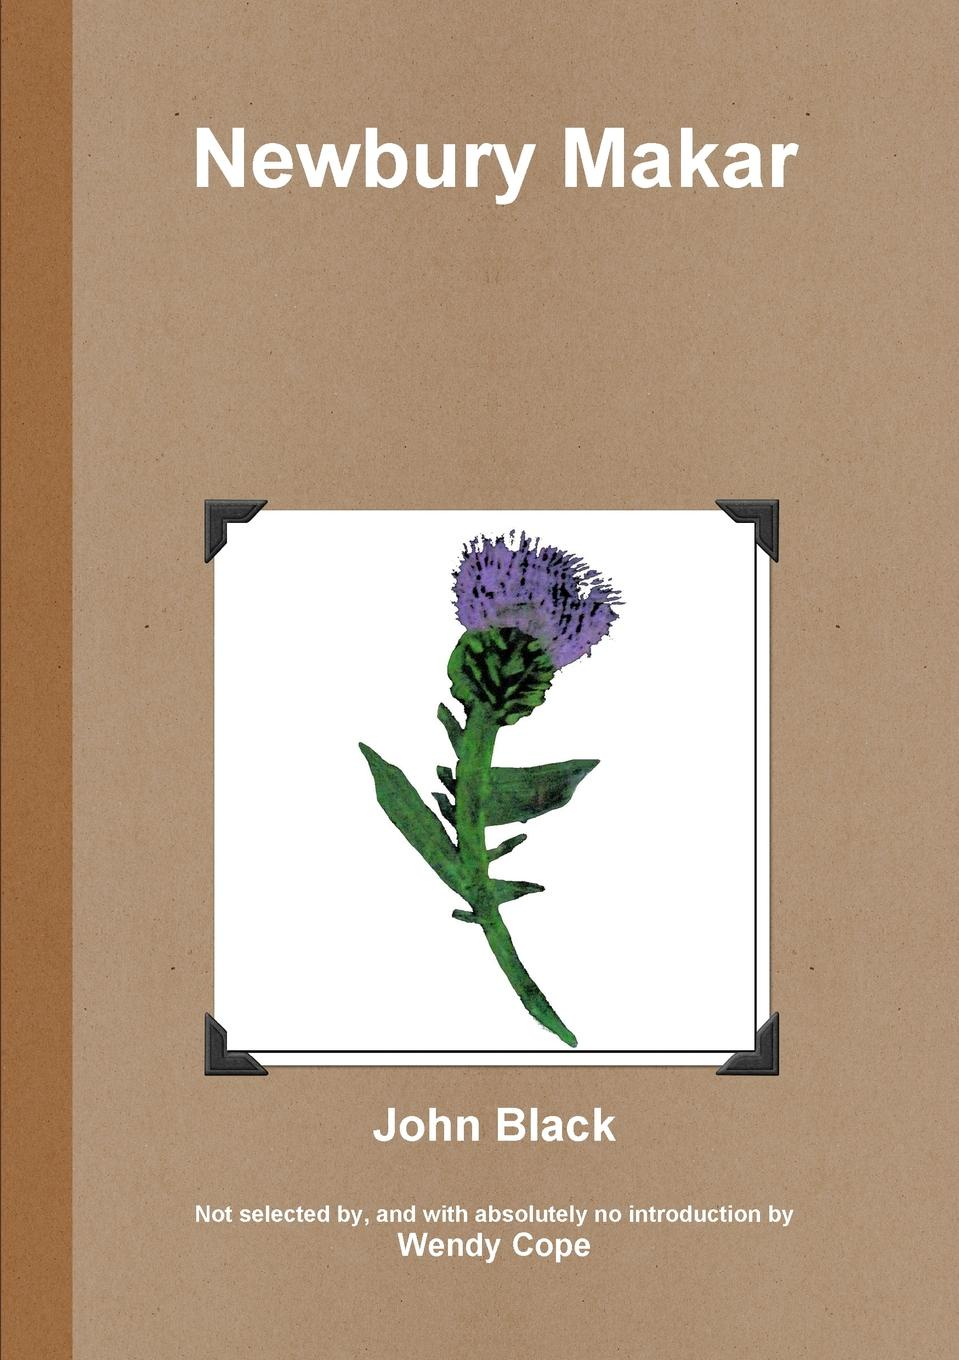 Newbury Makar An interesting blend of humour and more serious poems exploring...